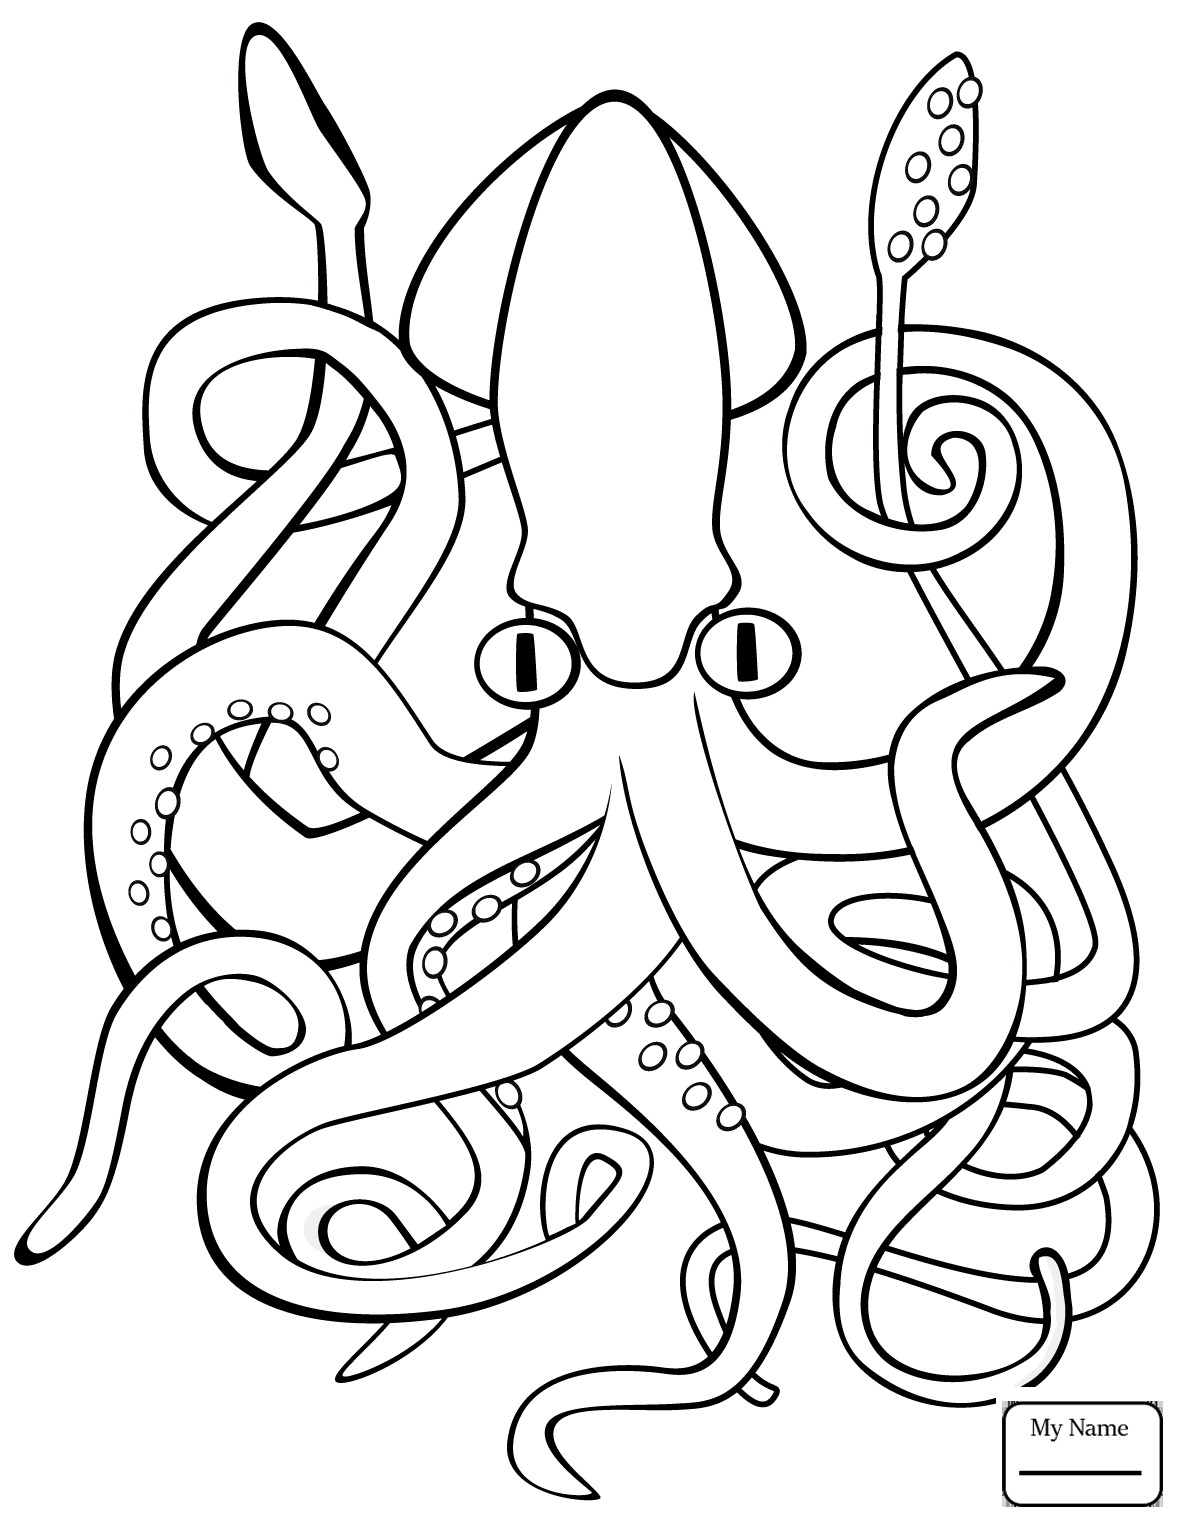 giant squid coloring pages fish and marine mammals coloring pages surfnetkids pages giant squid coloring